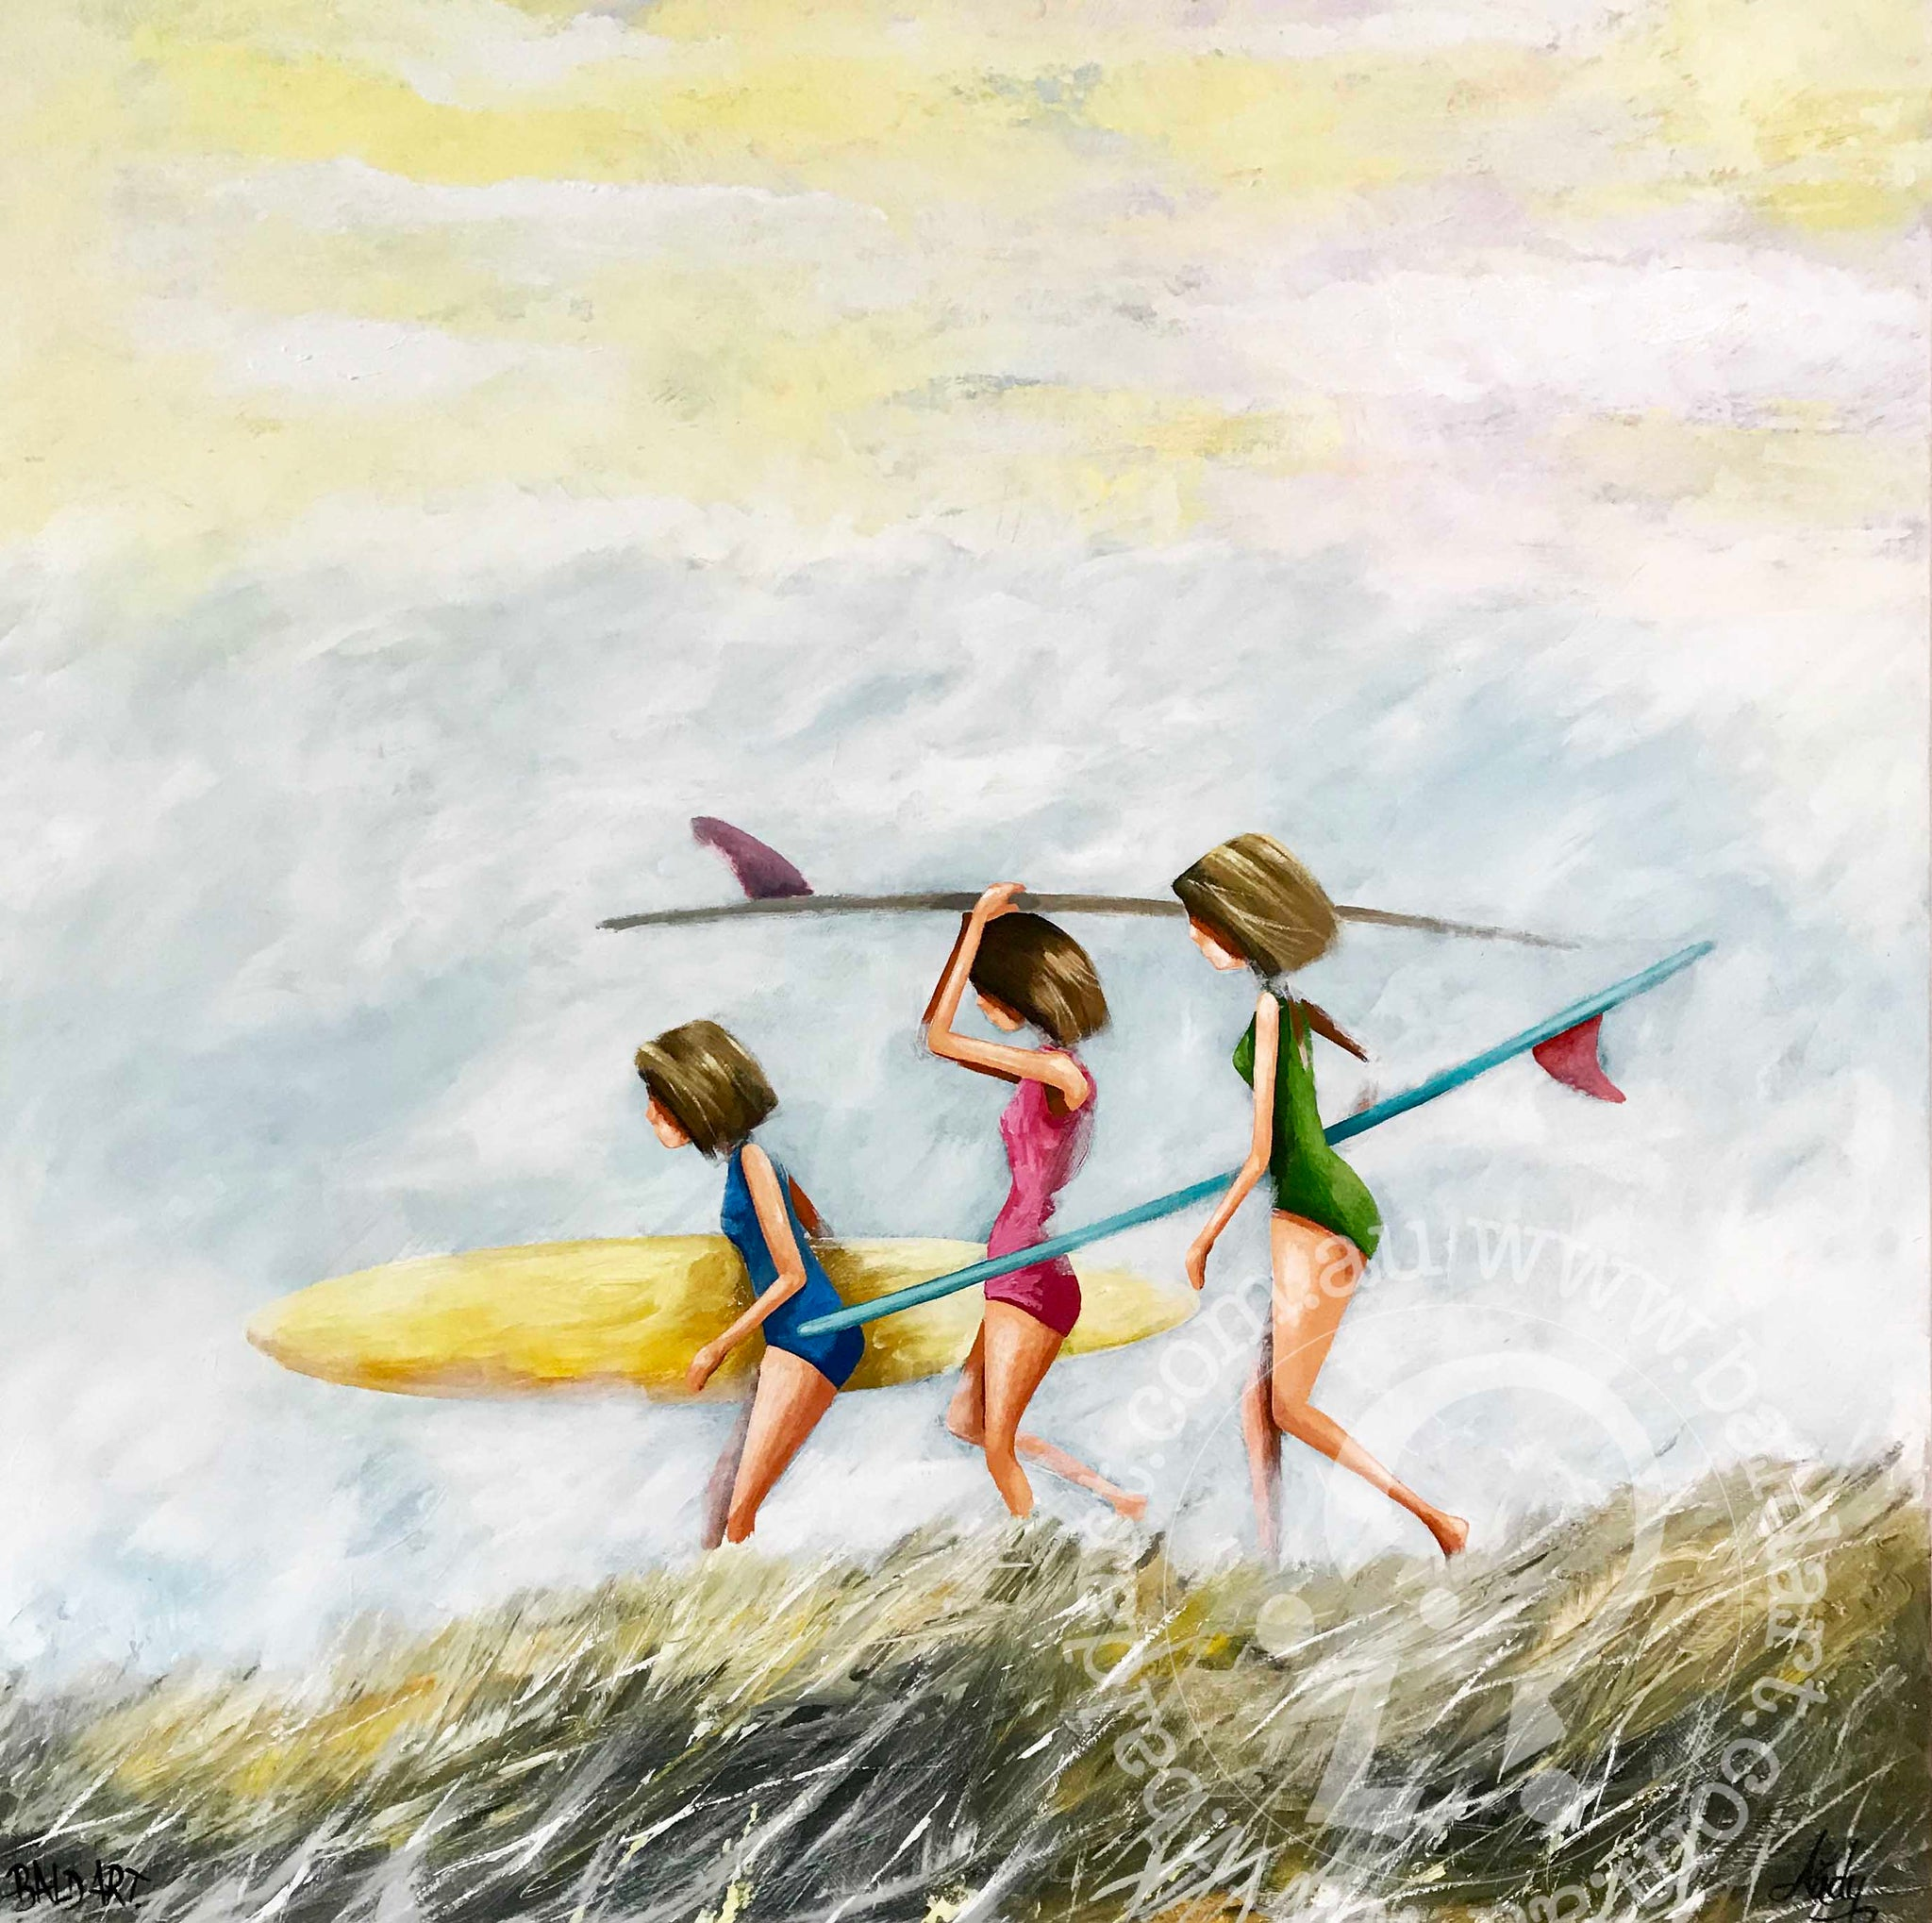 Original art painting print signed Andy Baker Beach surfing waves fun Australia